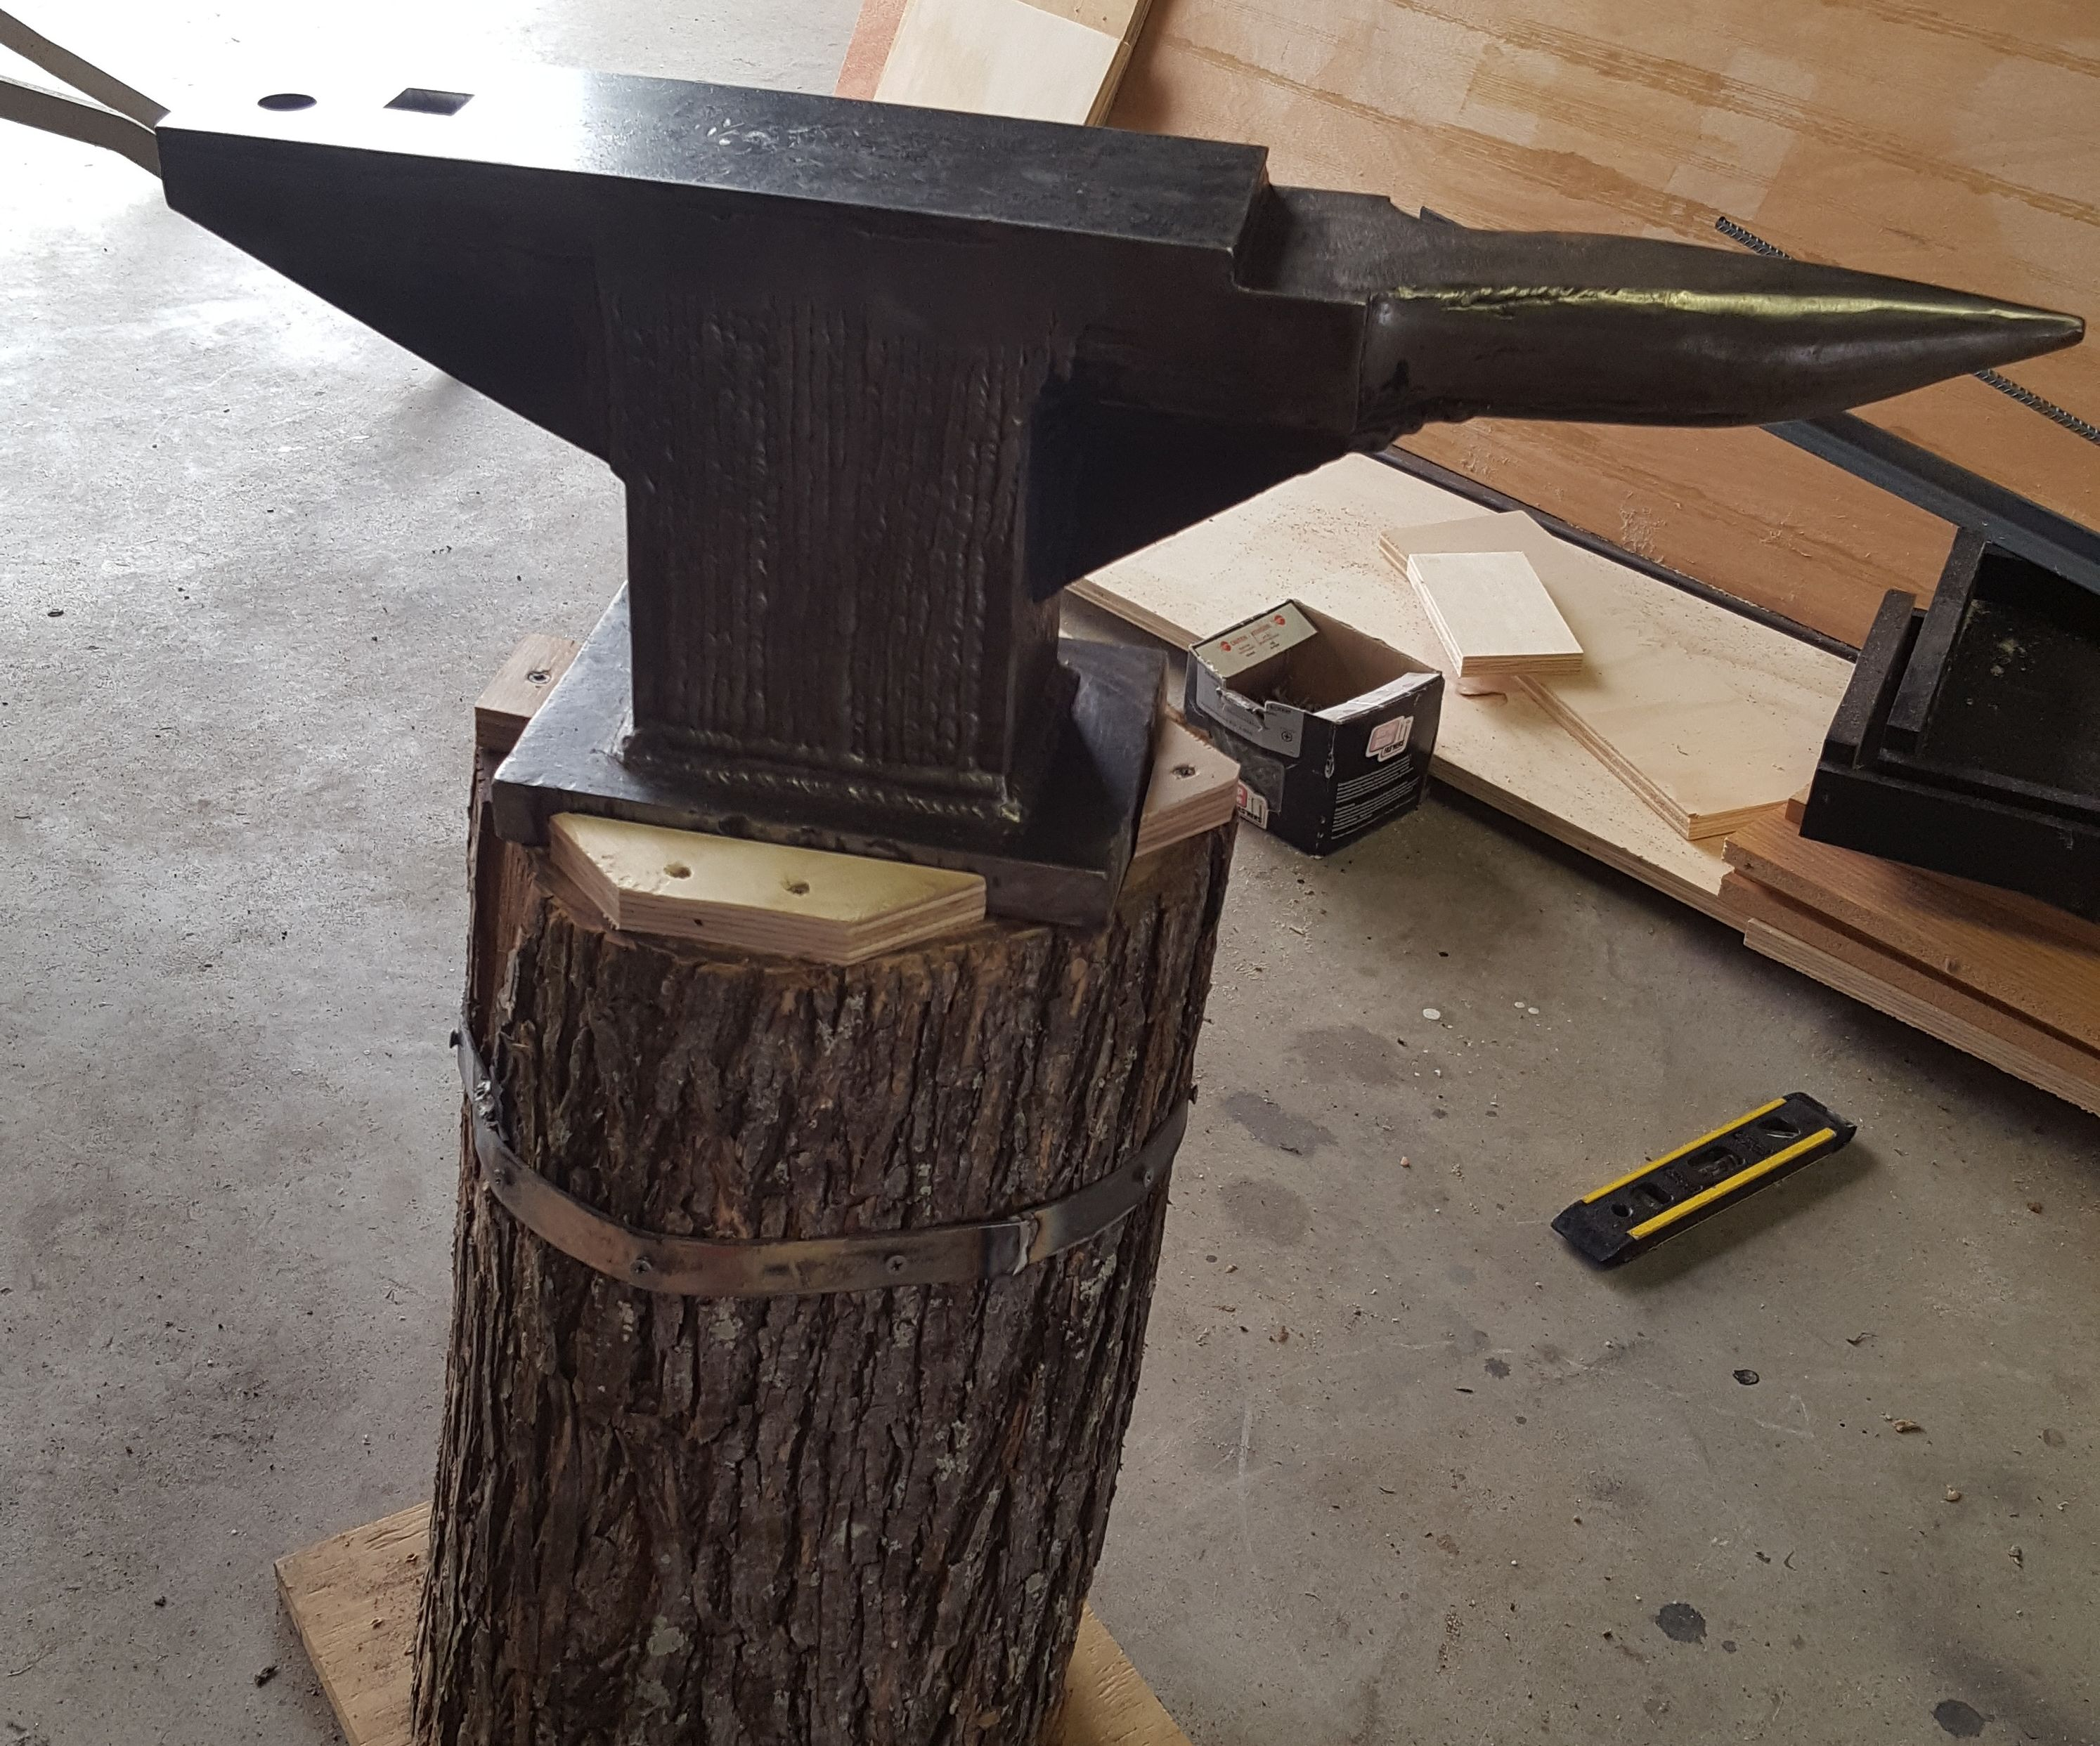 Home-made Anvil: 4 Steps (with Pictures)